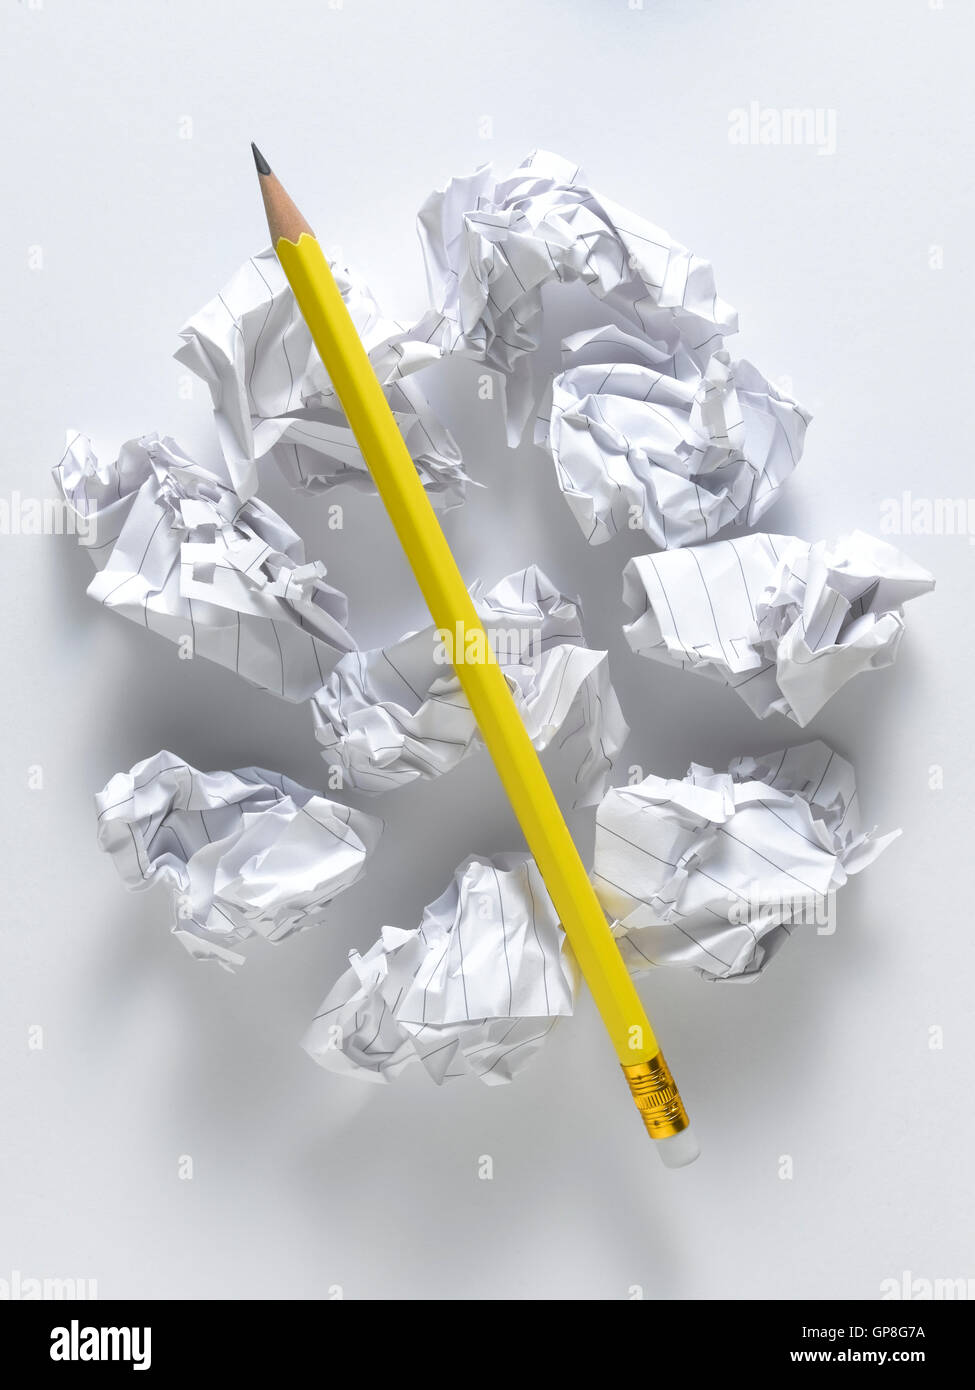 Yellow pencil isolated on a white background - Stock Image